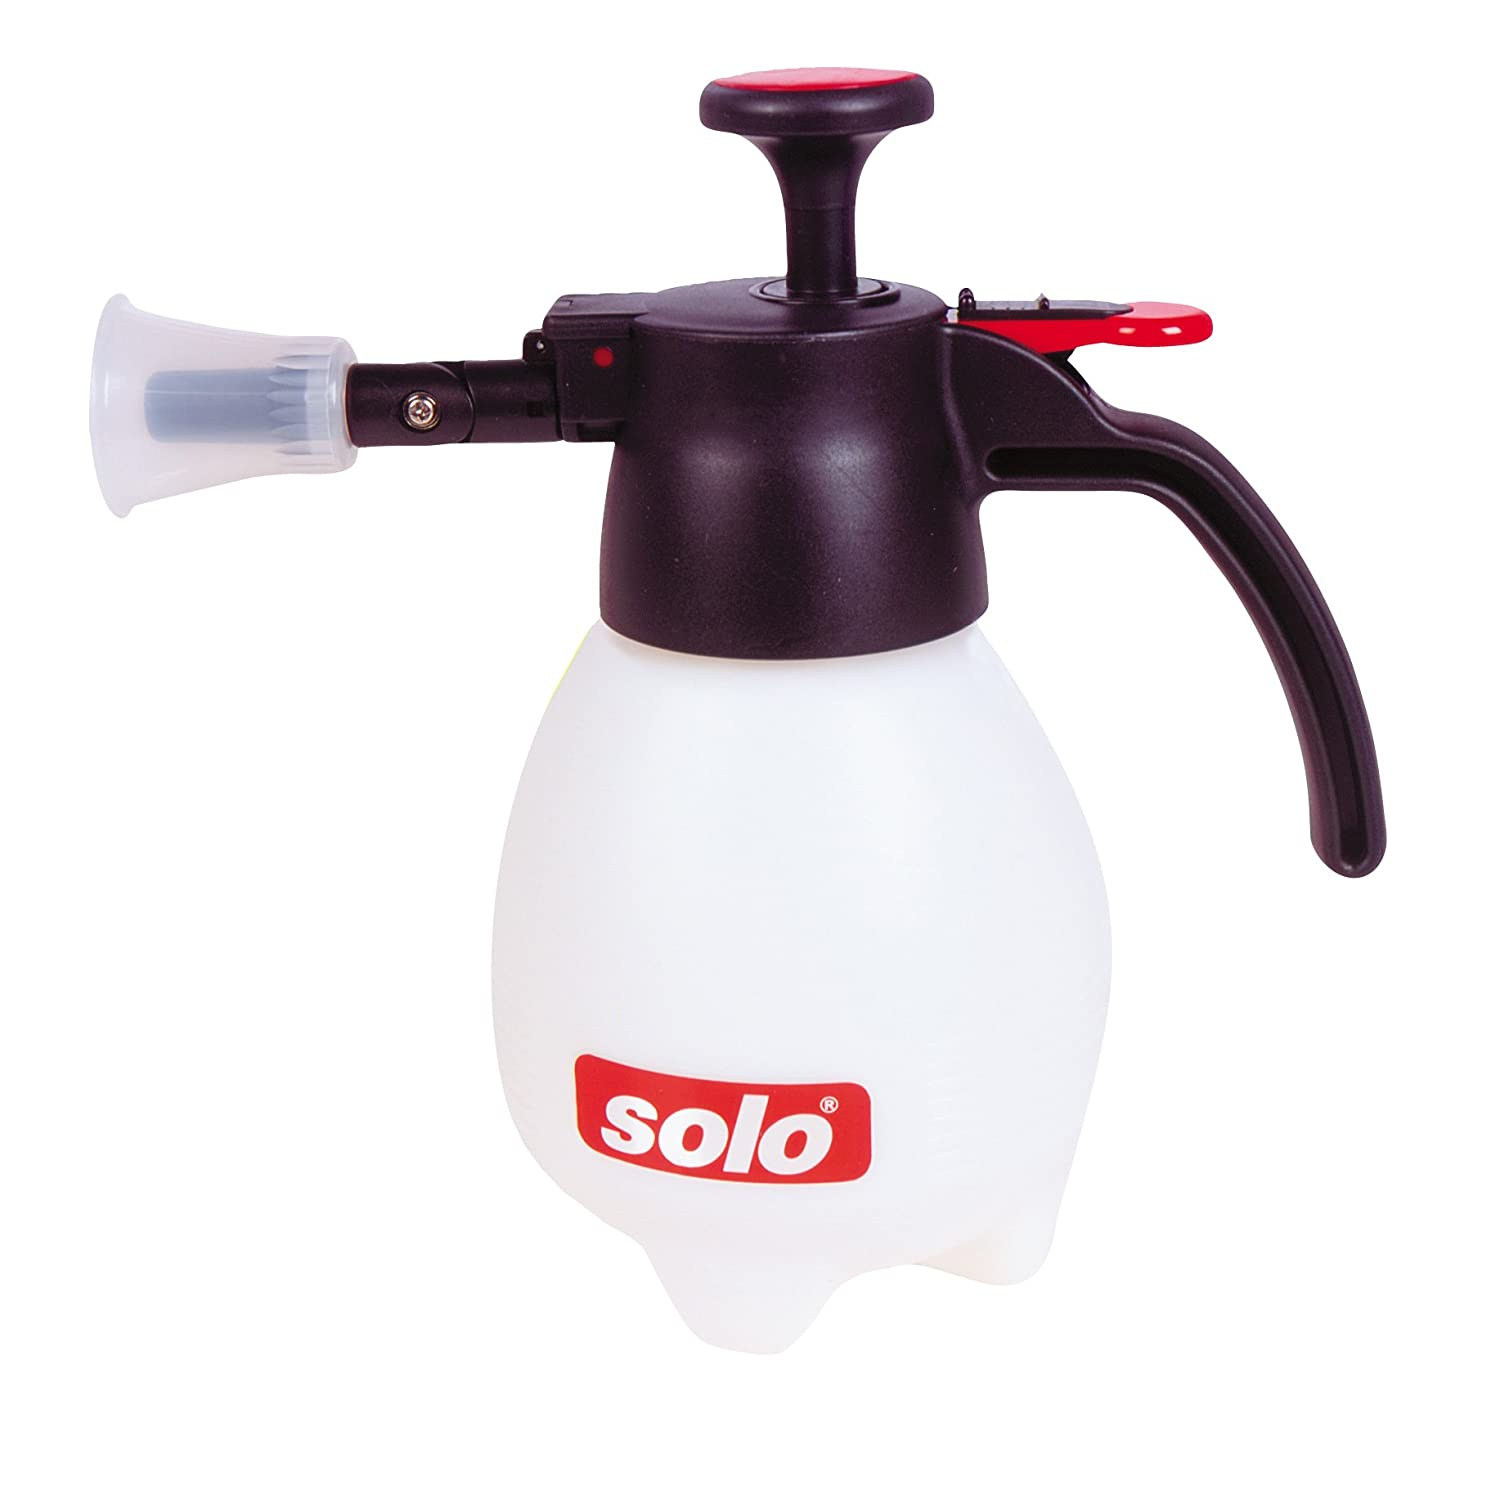 Solo 418 One-Hand Pressure Sprayer (1-Liter)